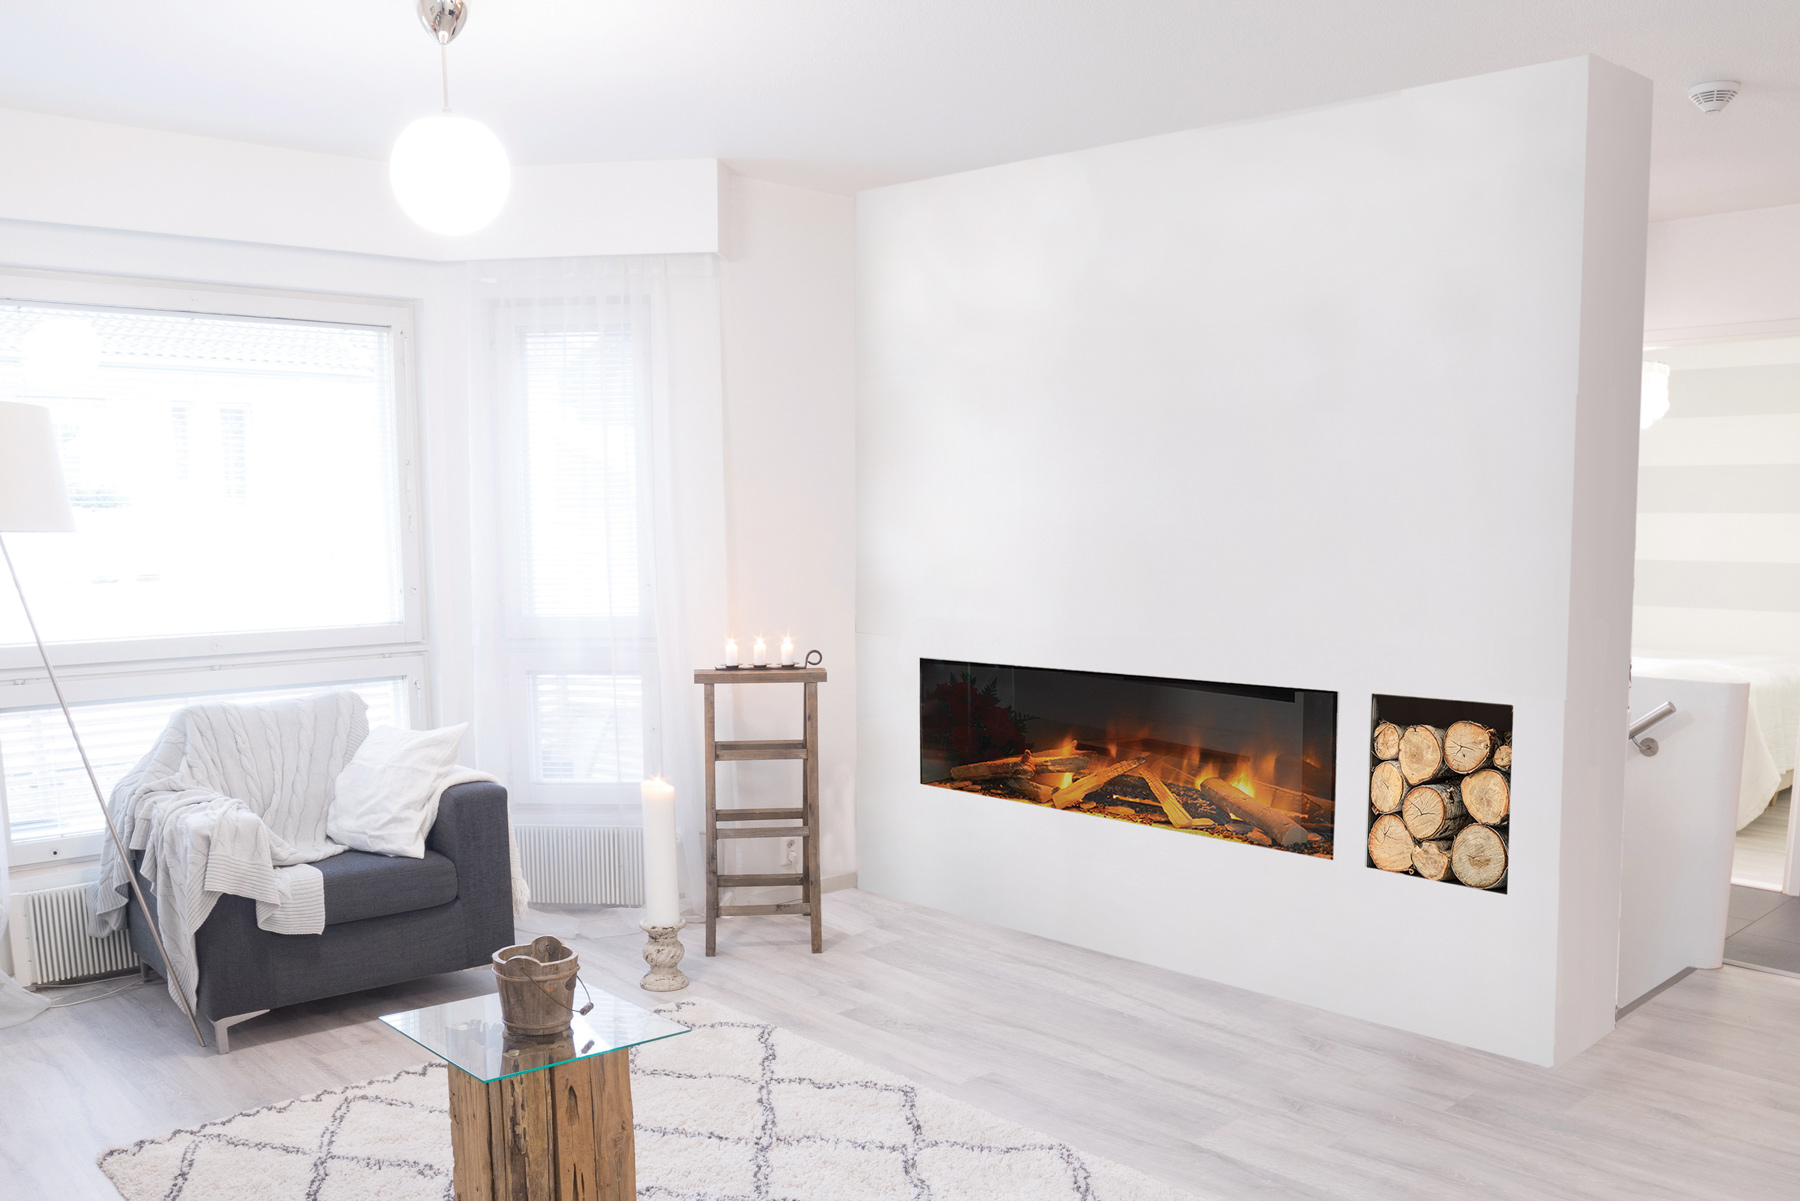 indoor electric fireplace set into wall